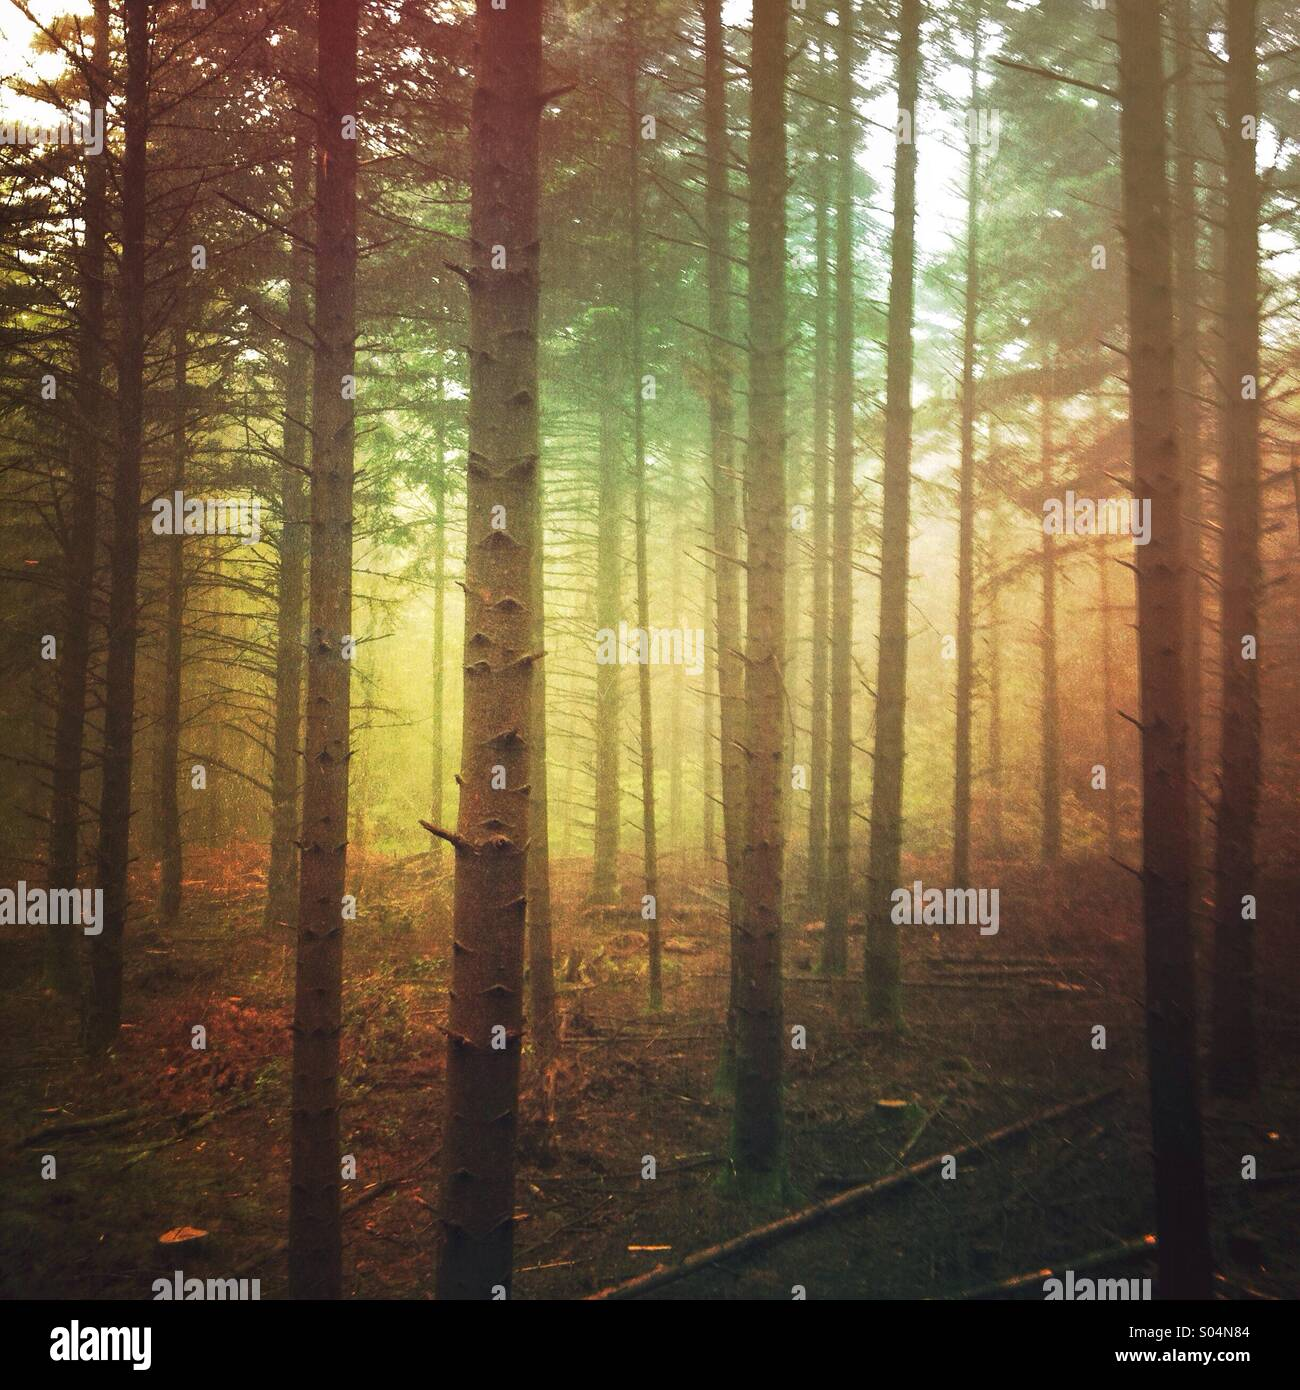 Moody dark forest on foggy day - Stock Image